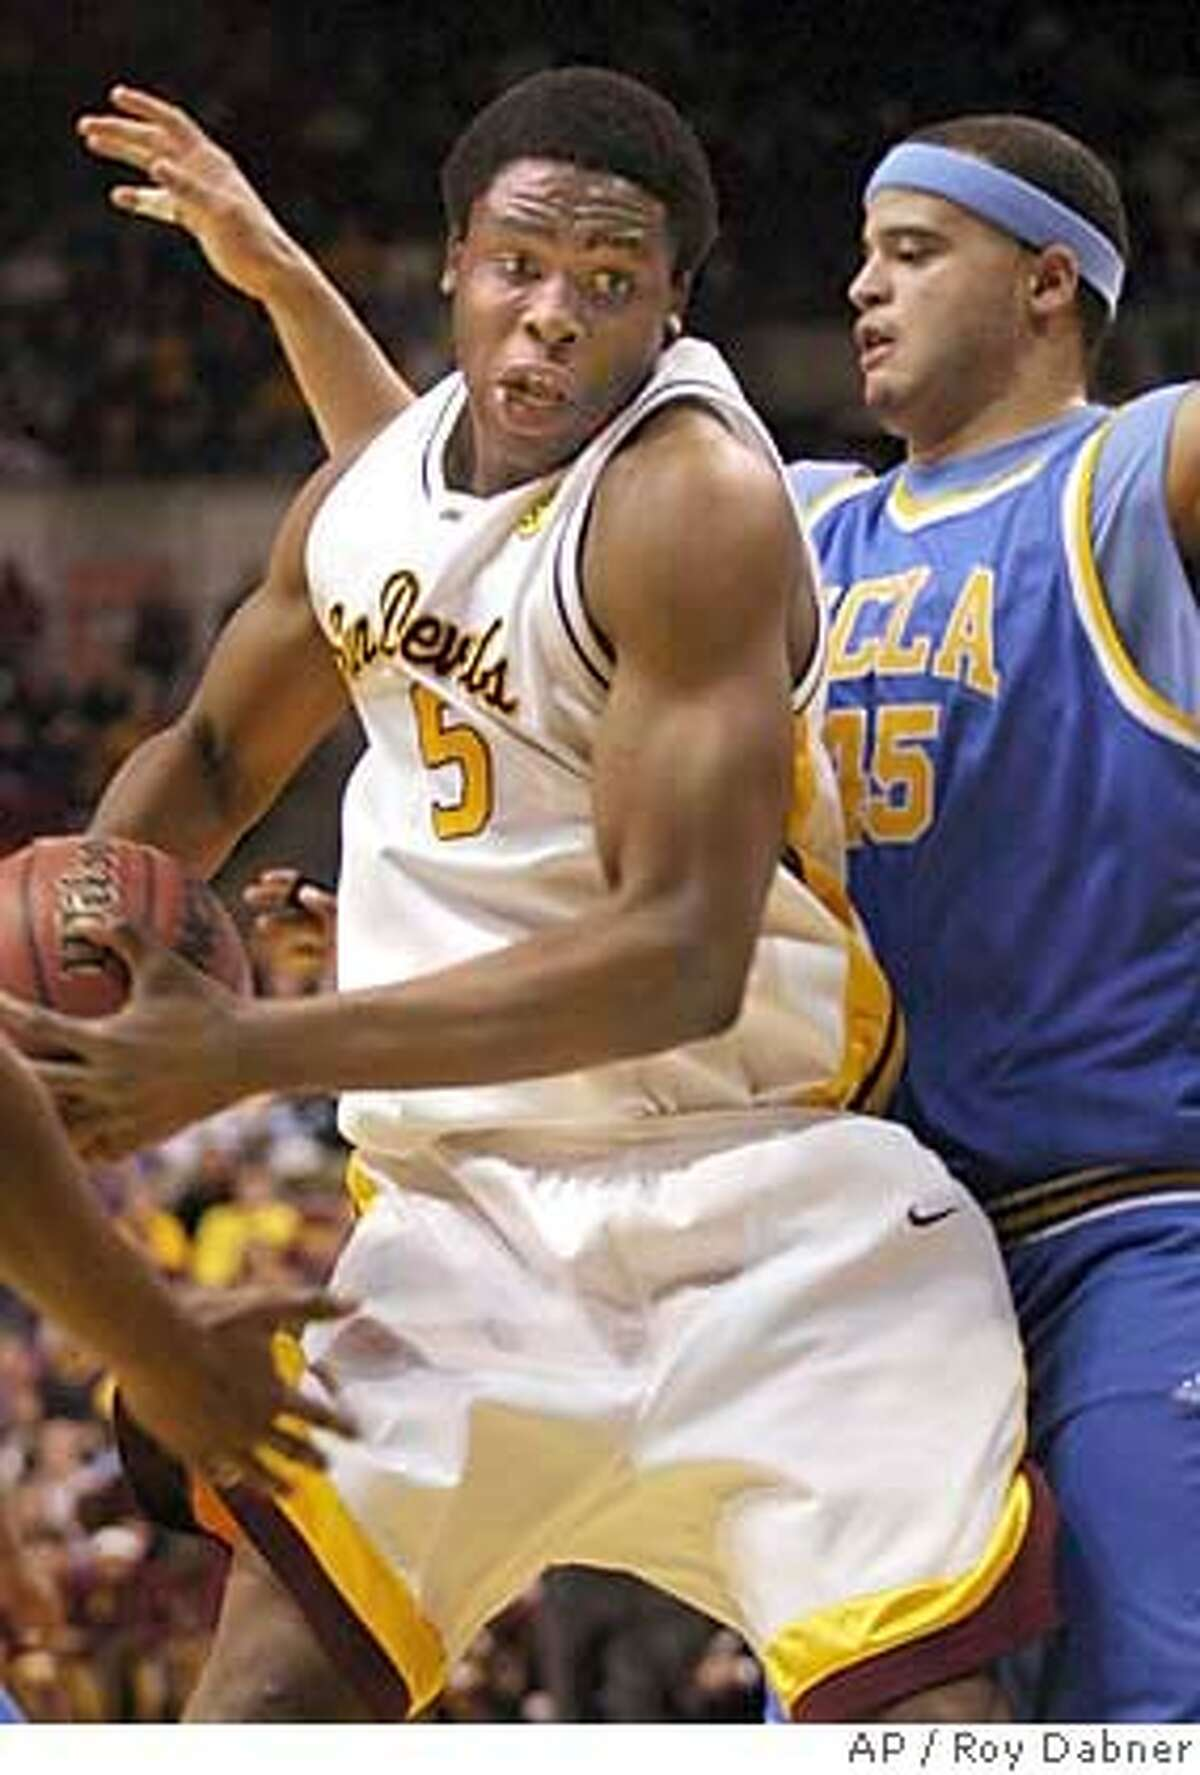 ** FILE ** Arizona State forward Ike Diogu moves in the lane against UCLA's Michael Fey, right, during the first half, in this Jan. 13, 2005 file photo, in Tempe, Ariz.. Diogu was selected as the No. 9 pick in the NBA Draft by the Golden State Warriors, Tuesday, June 28, 2005. (AP Photo/Roy Dabner)